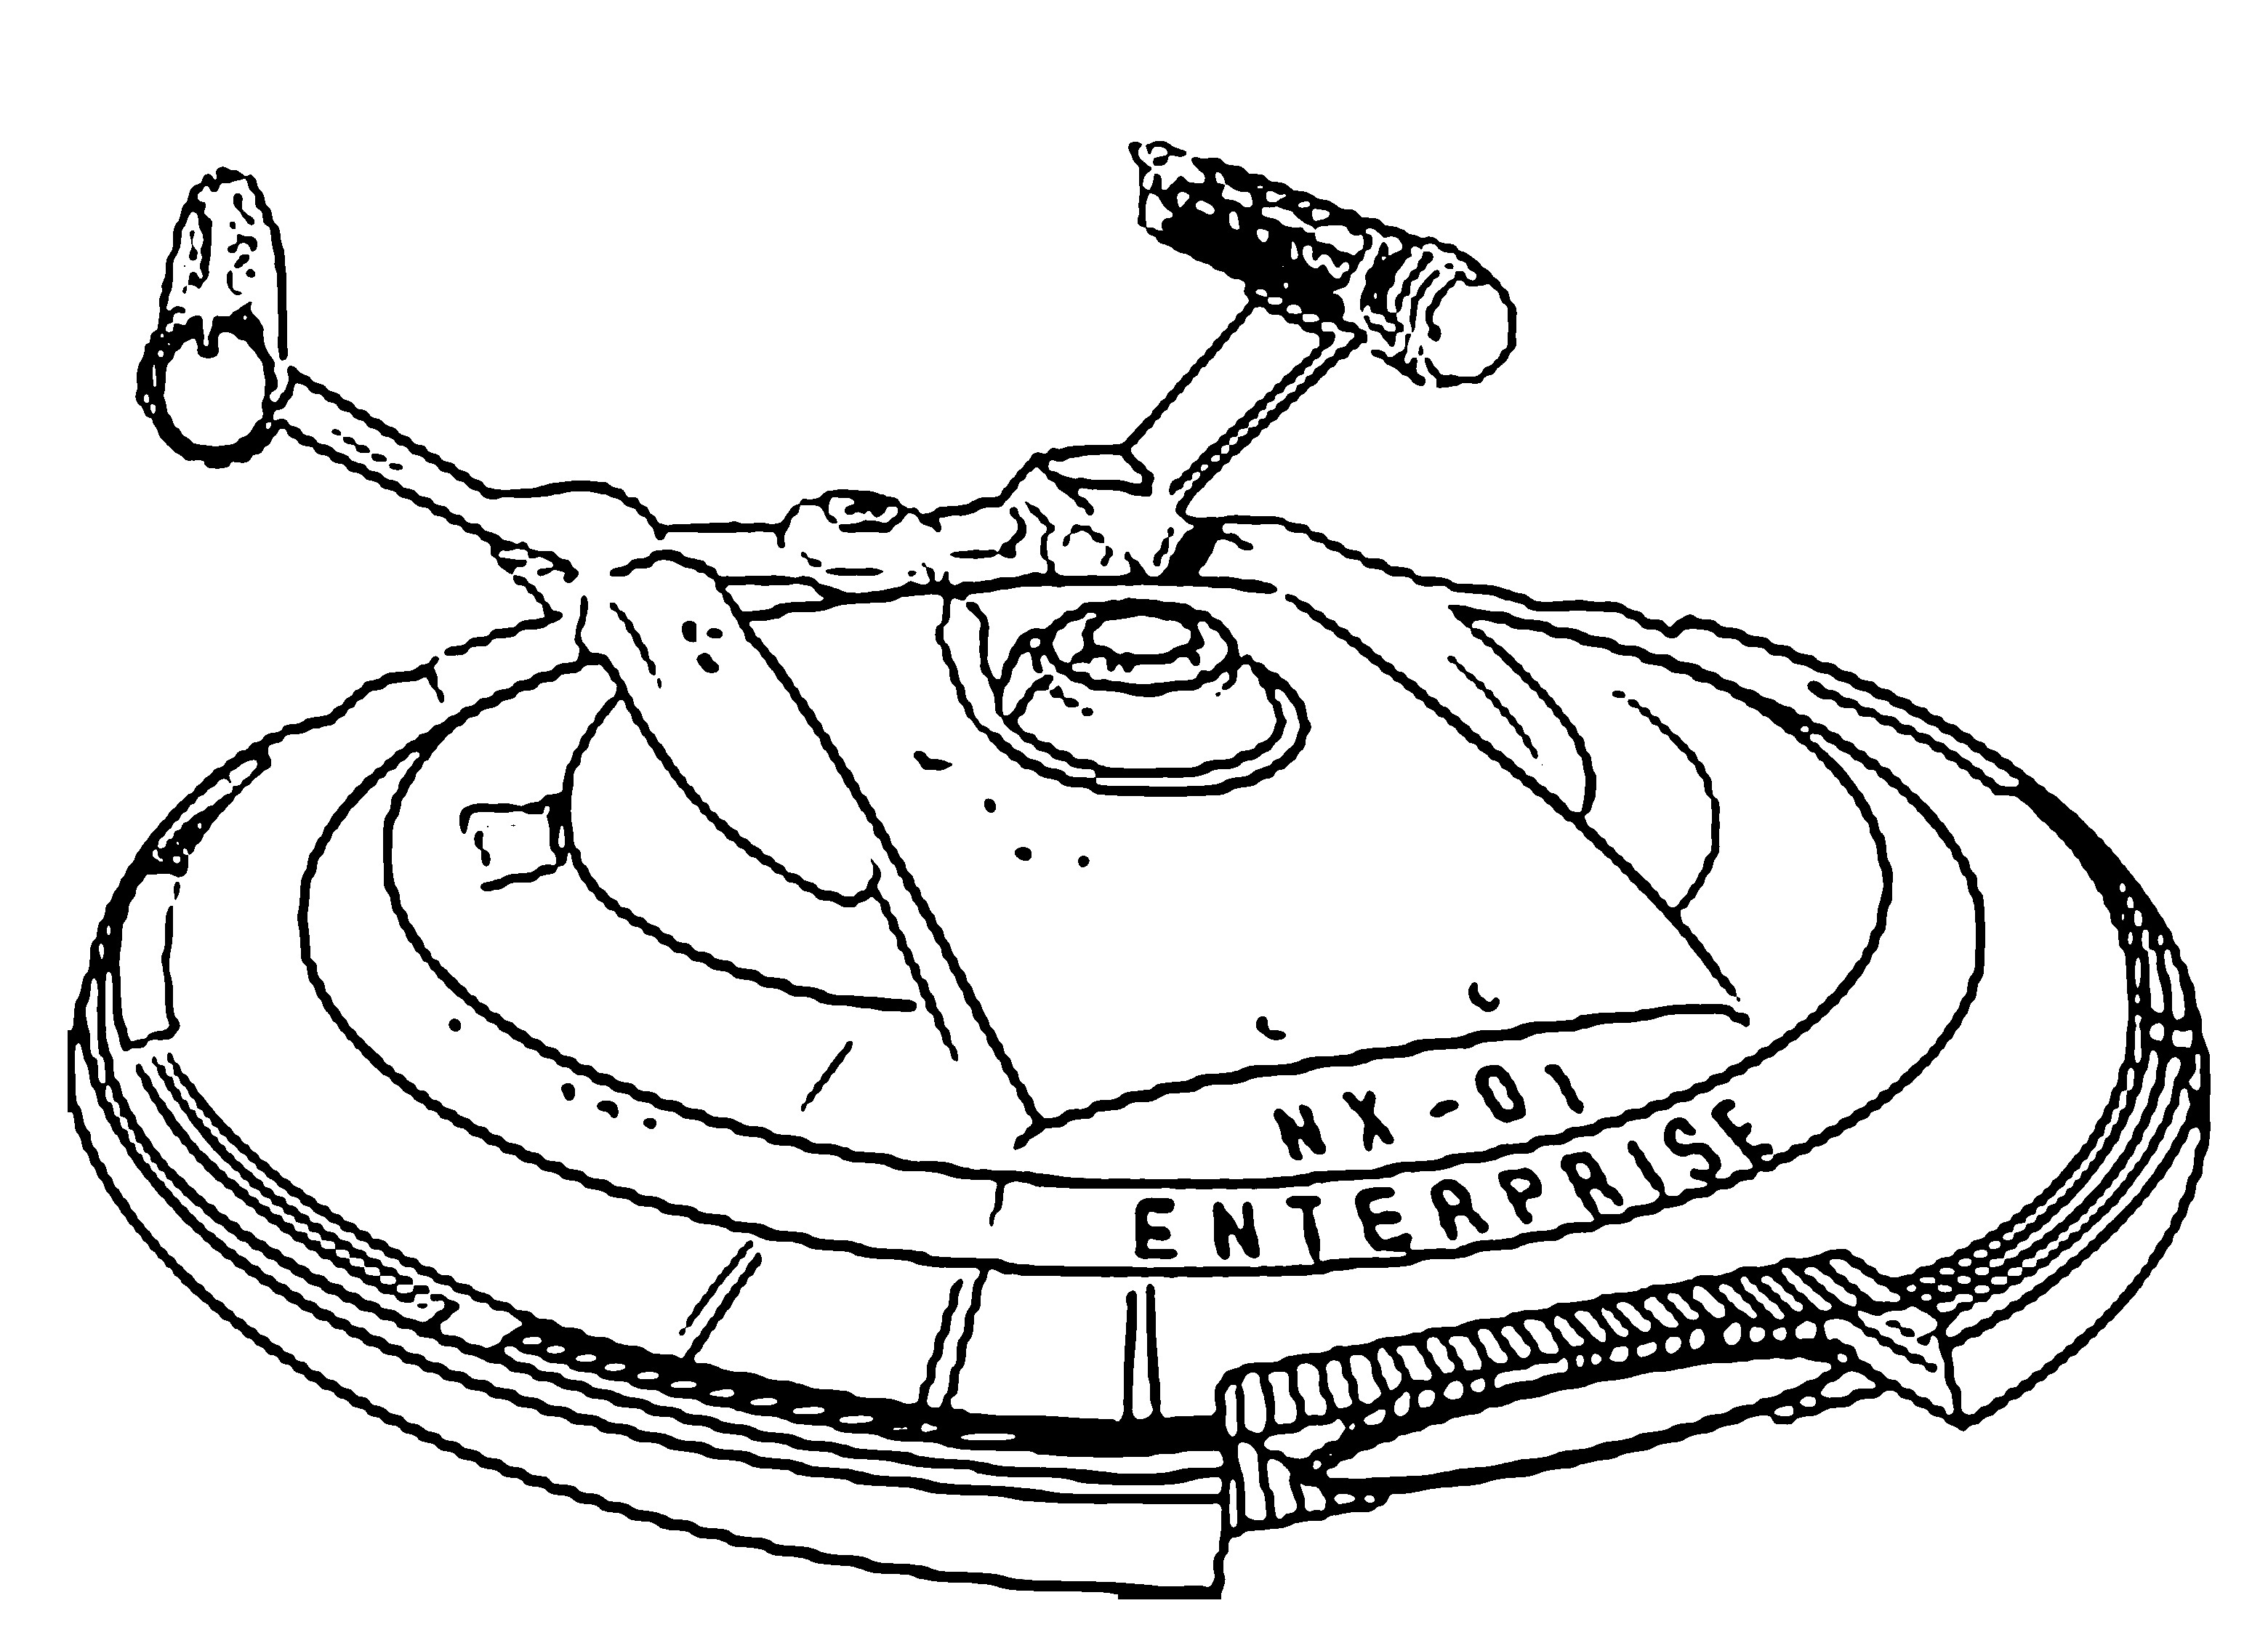 lego rocket ship coloring pages - photo#20